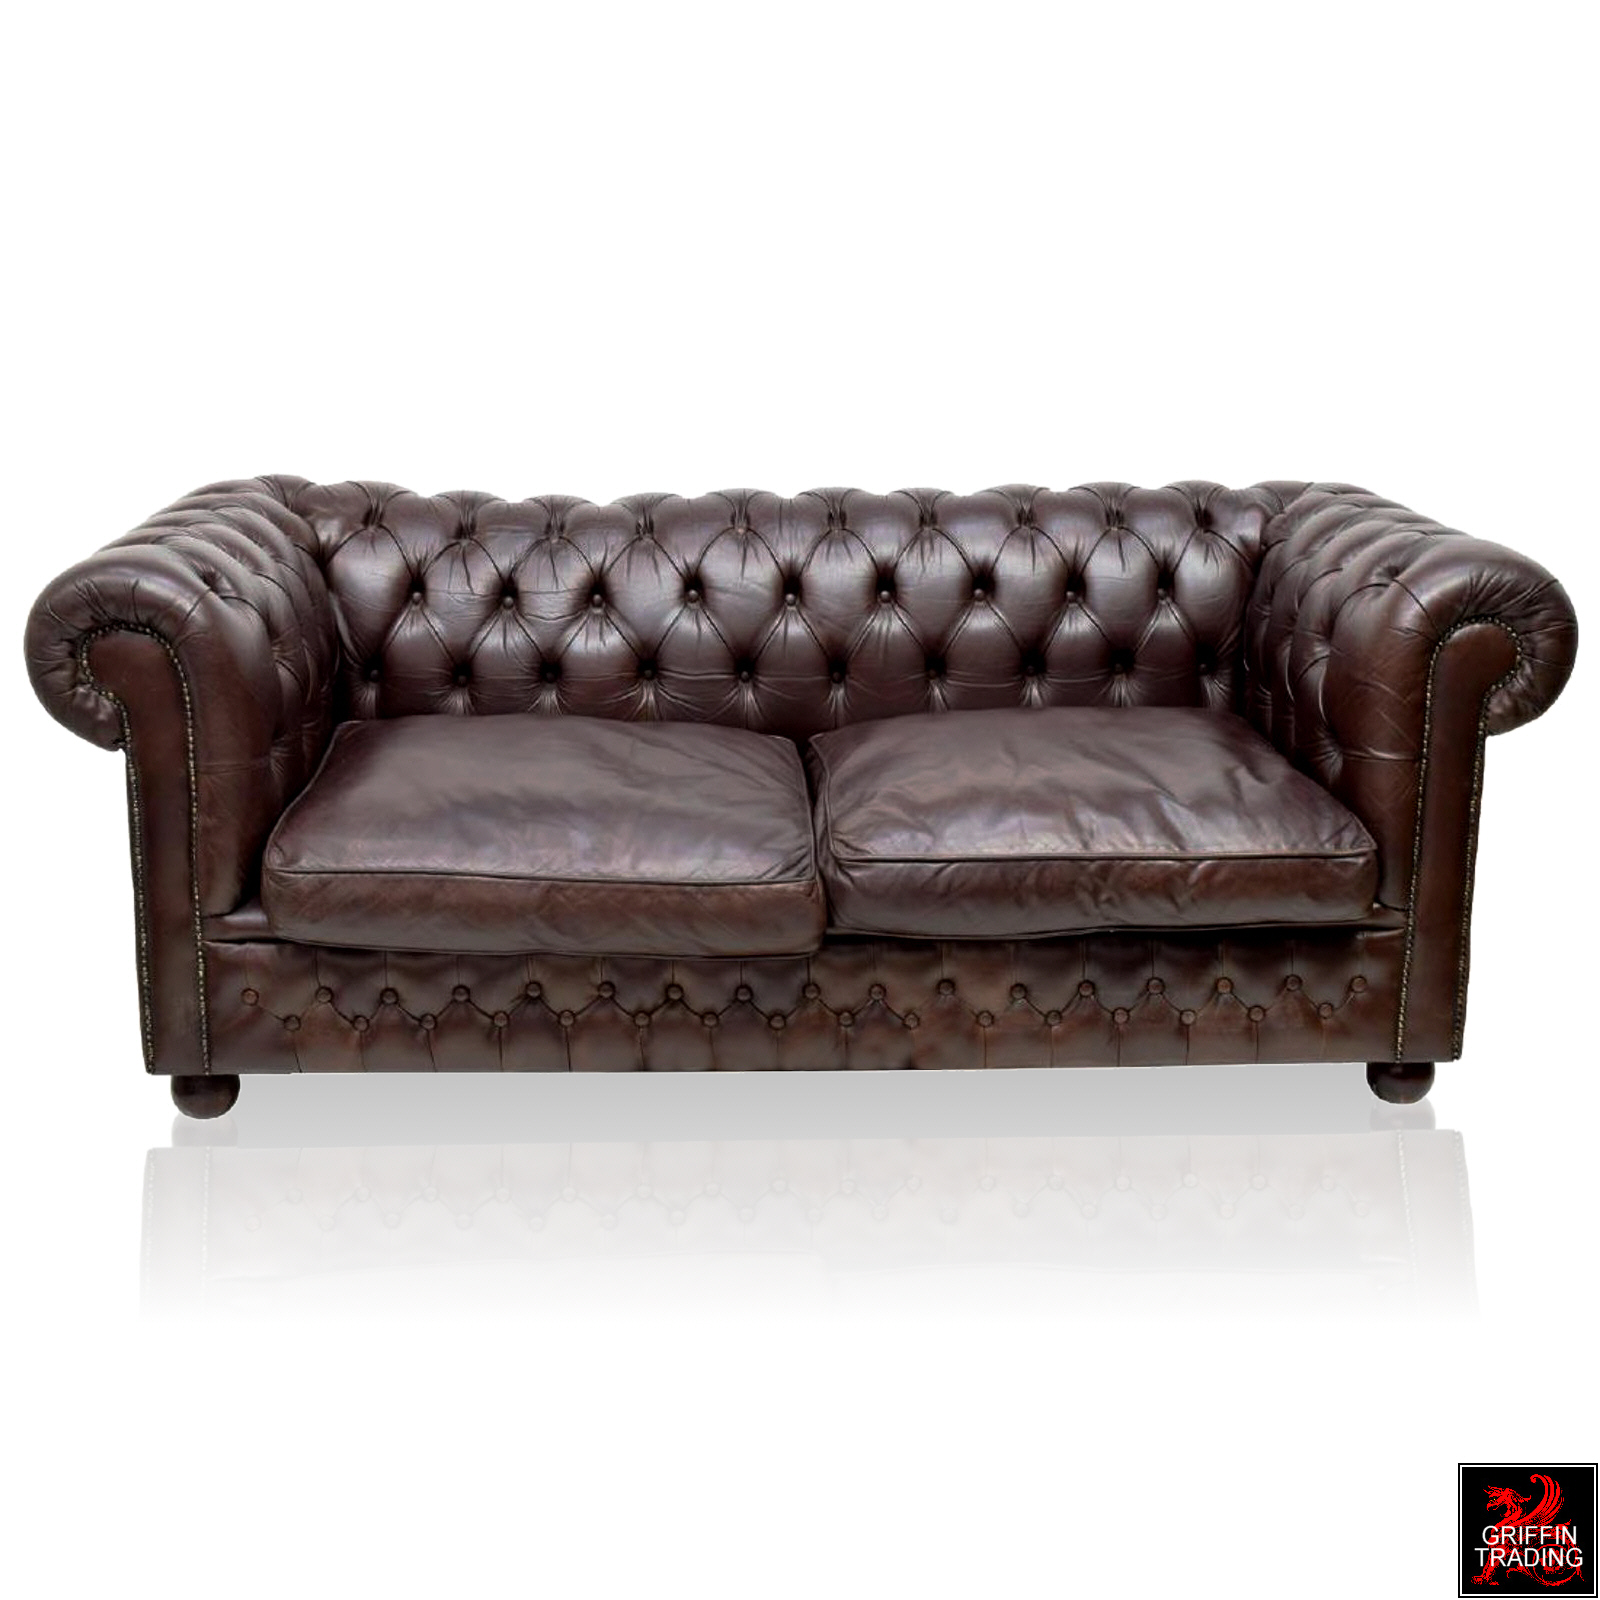 Peachy Vintage Leather Chesterfield Sofa Download Free Architecture Designs Scobabritishbridgeorg